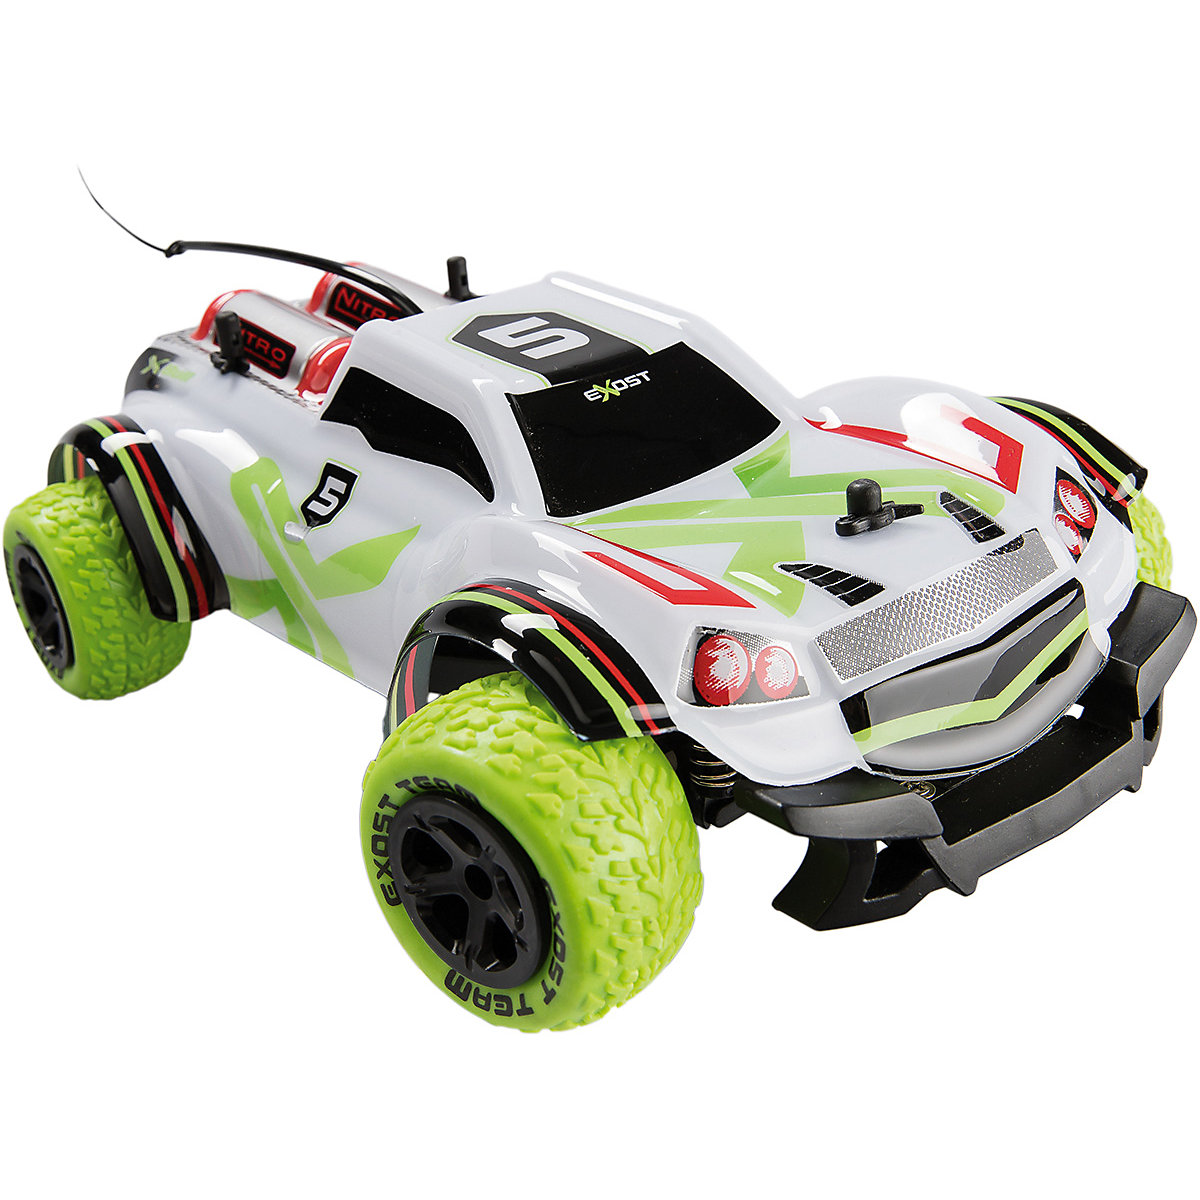 Silverlit RC Cars 10077739 Remote Control Toys radio-controlled toy games children Kids car high quality sensorless 45a brushless esc electric speed controller for rc car racing set ft toys wholesale free shipping